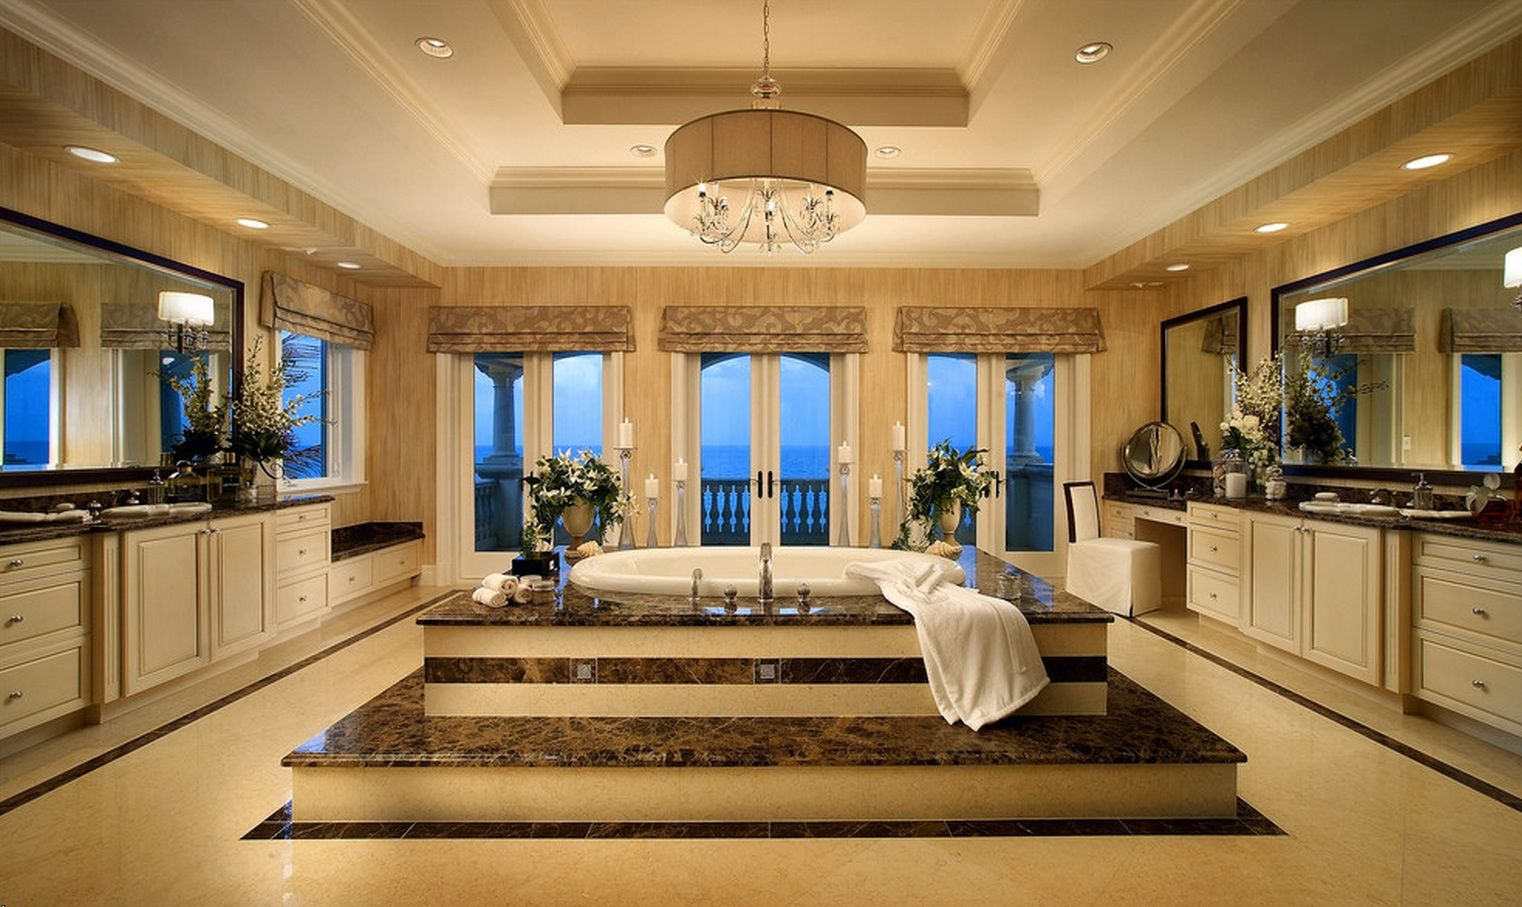 The Mother Of All Master Bathrooms Luxury Master Bathrooms Bathroom Design Luxury Dream Bathrooms Upscale master bathrooms upscale